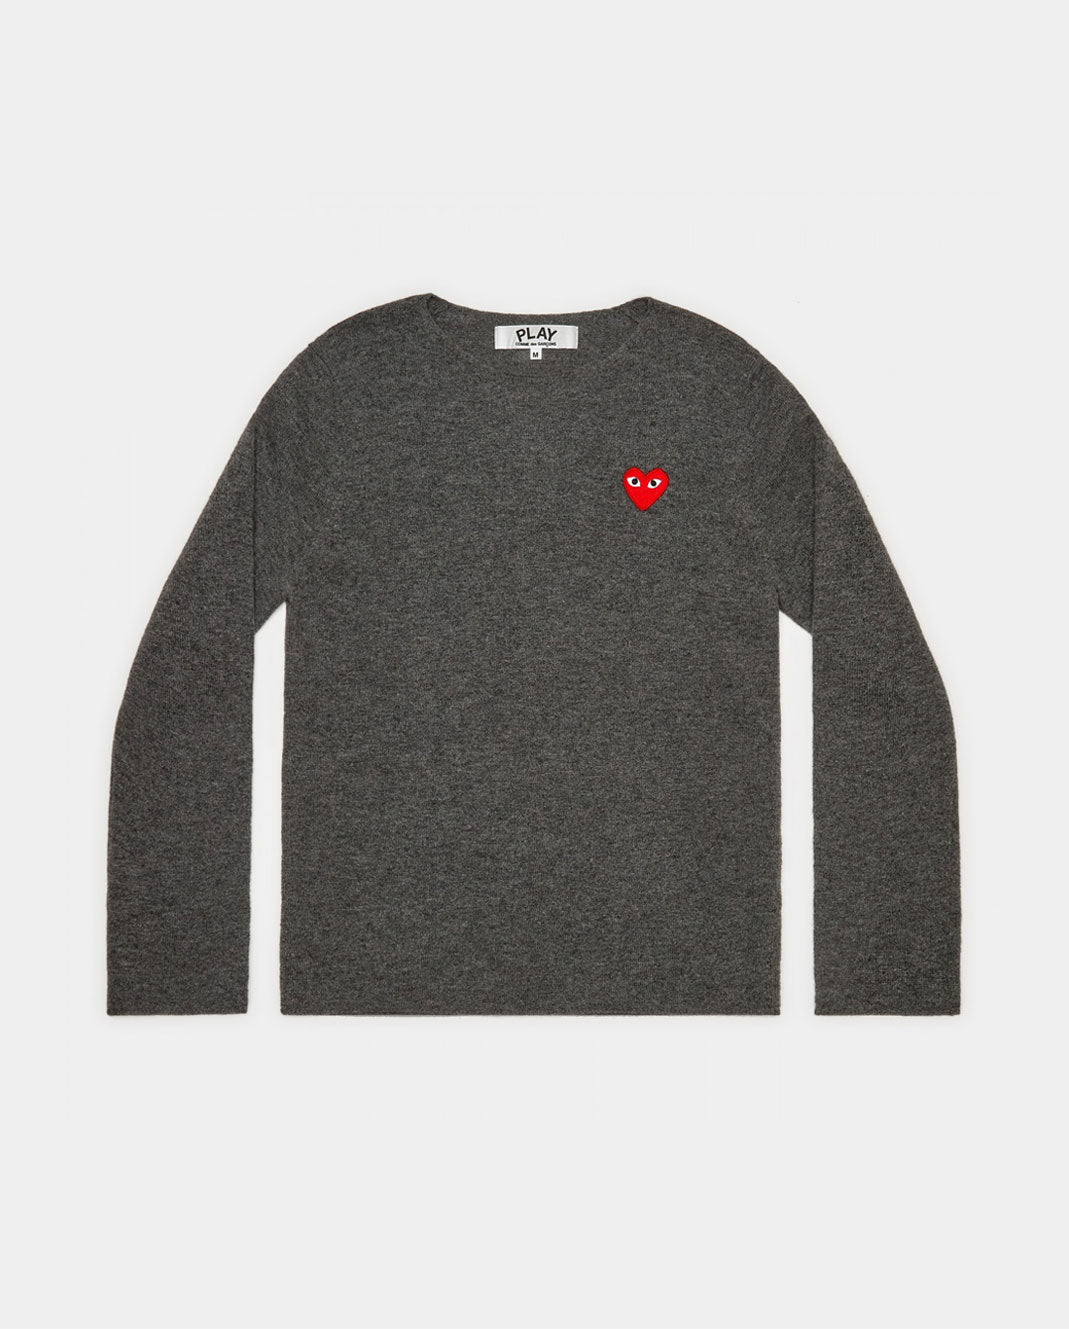 N067 CREW NECK JUMPER / GREY